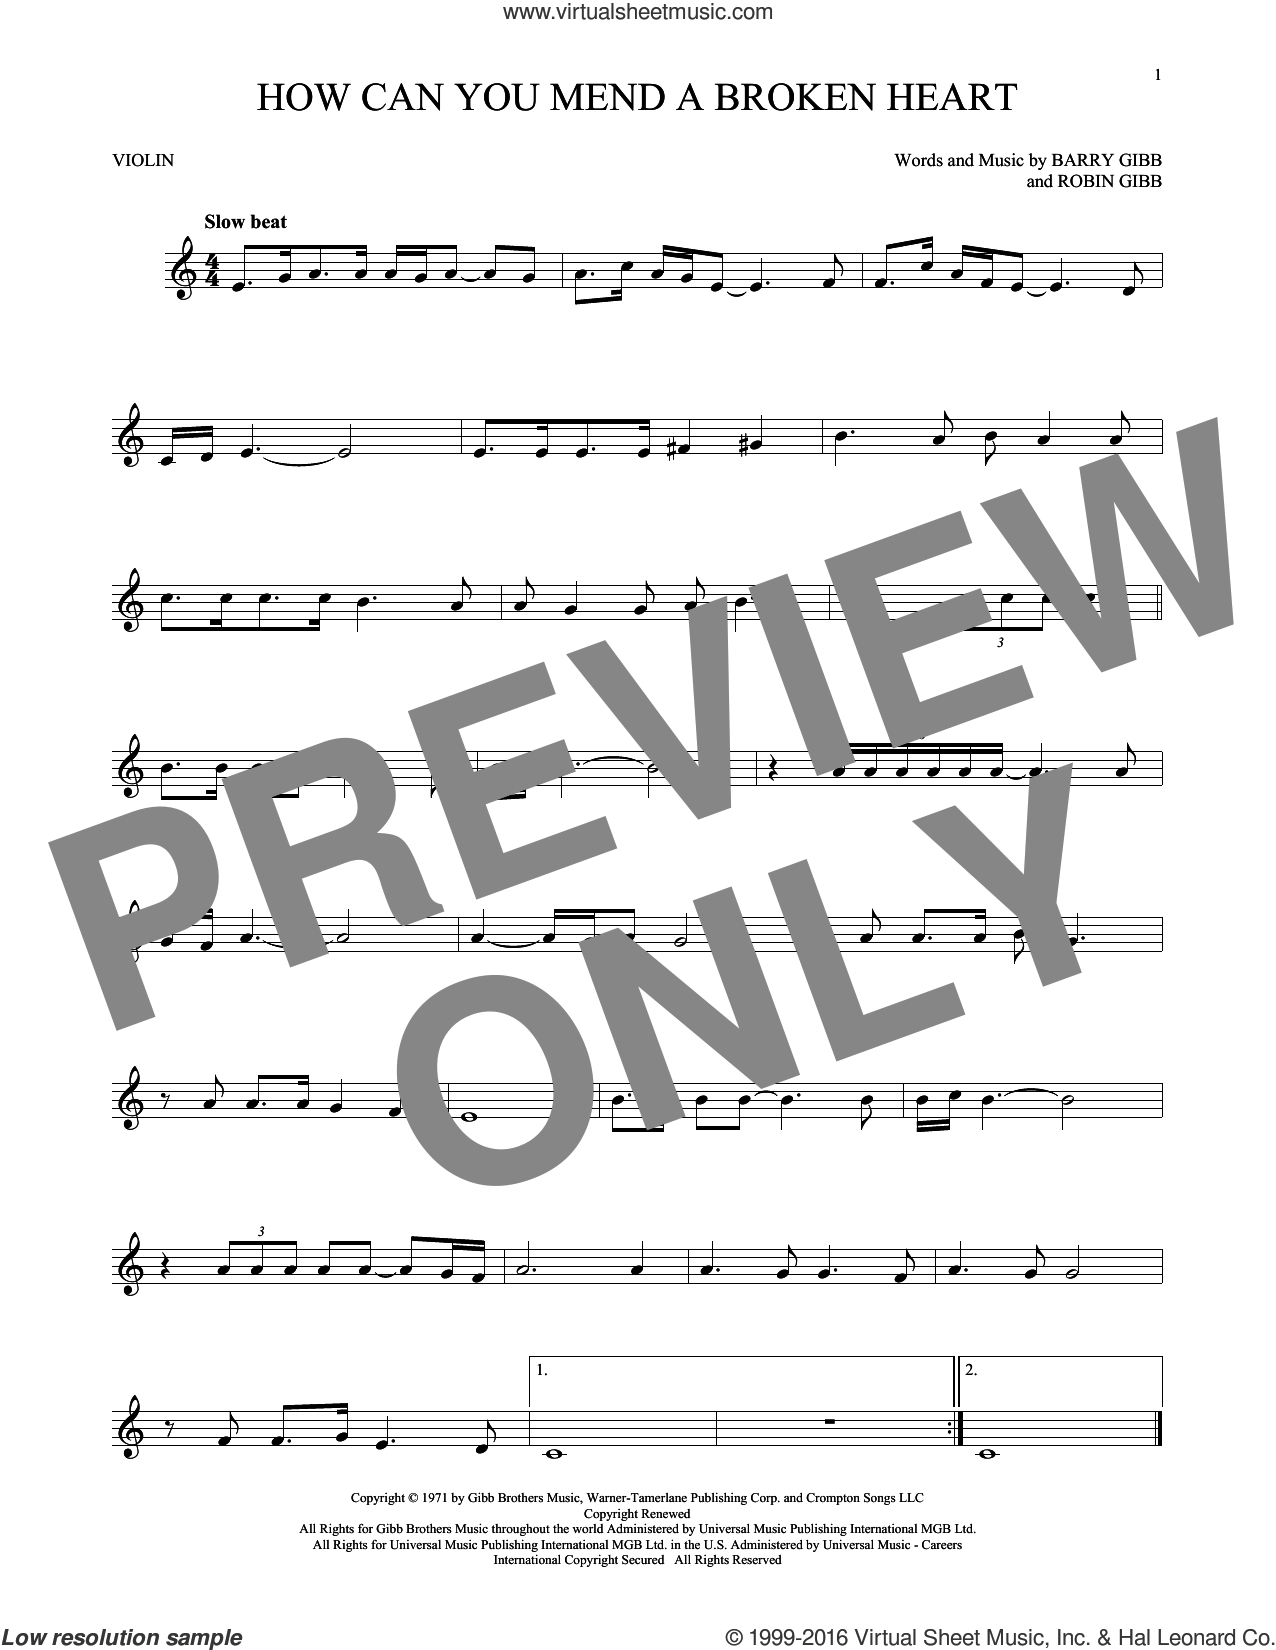 How Can You Mend A Broken Heart sheet music for violin solo by Robin Gibb